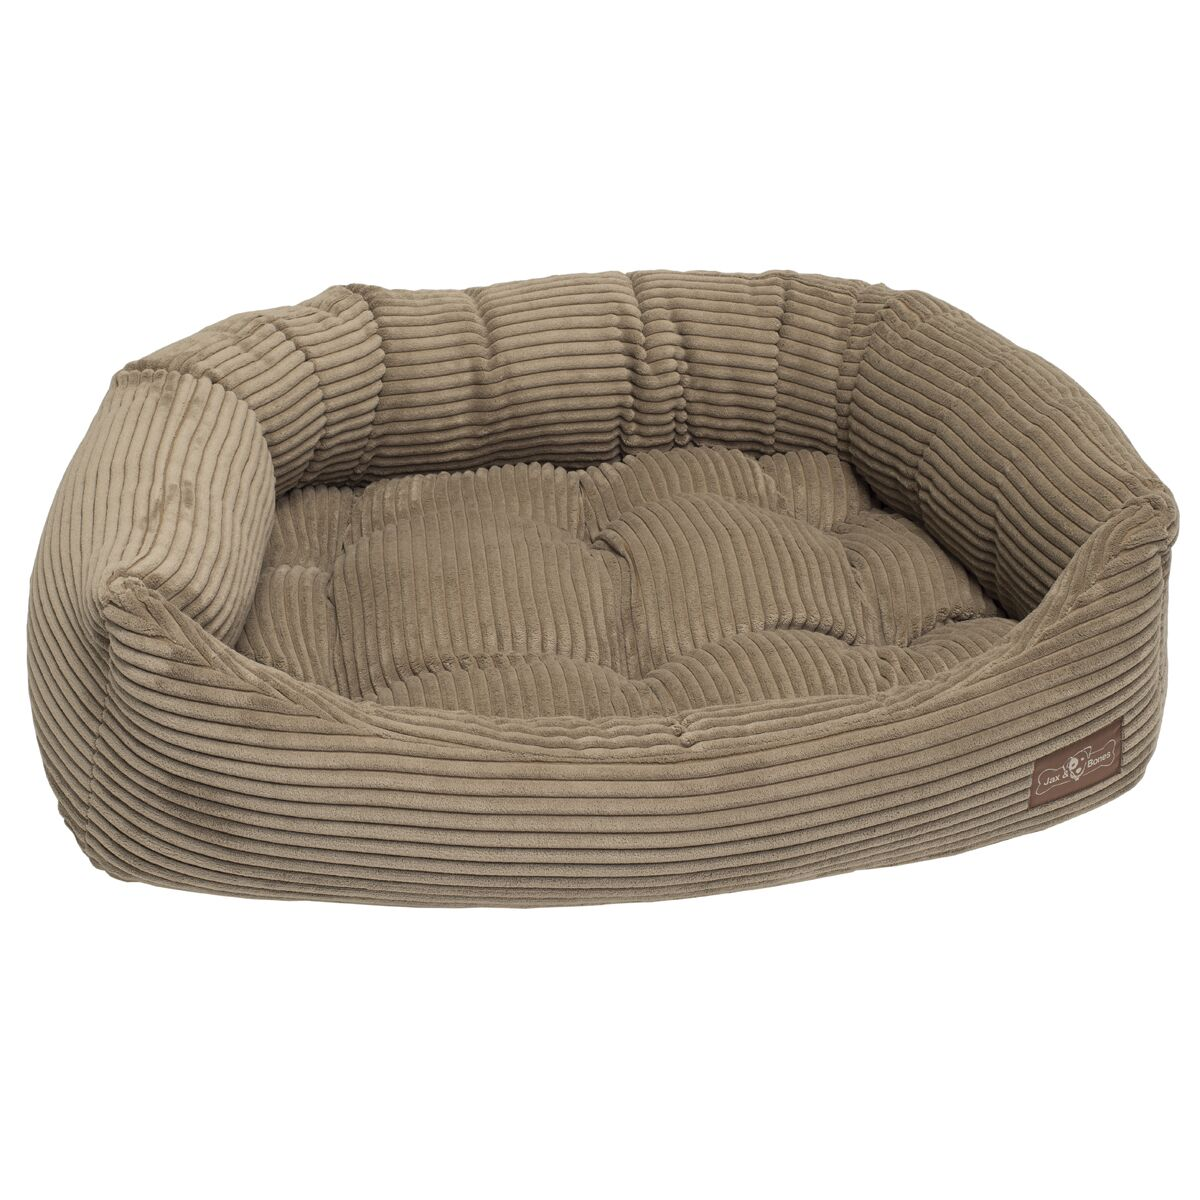 Corduroy Napper Bed Bolster Color: Honey, Size: Small - 21